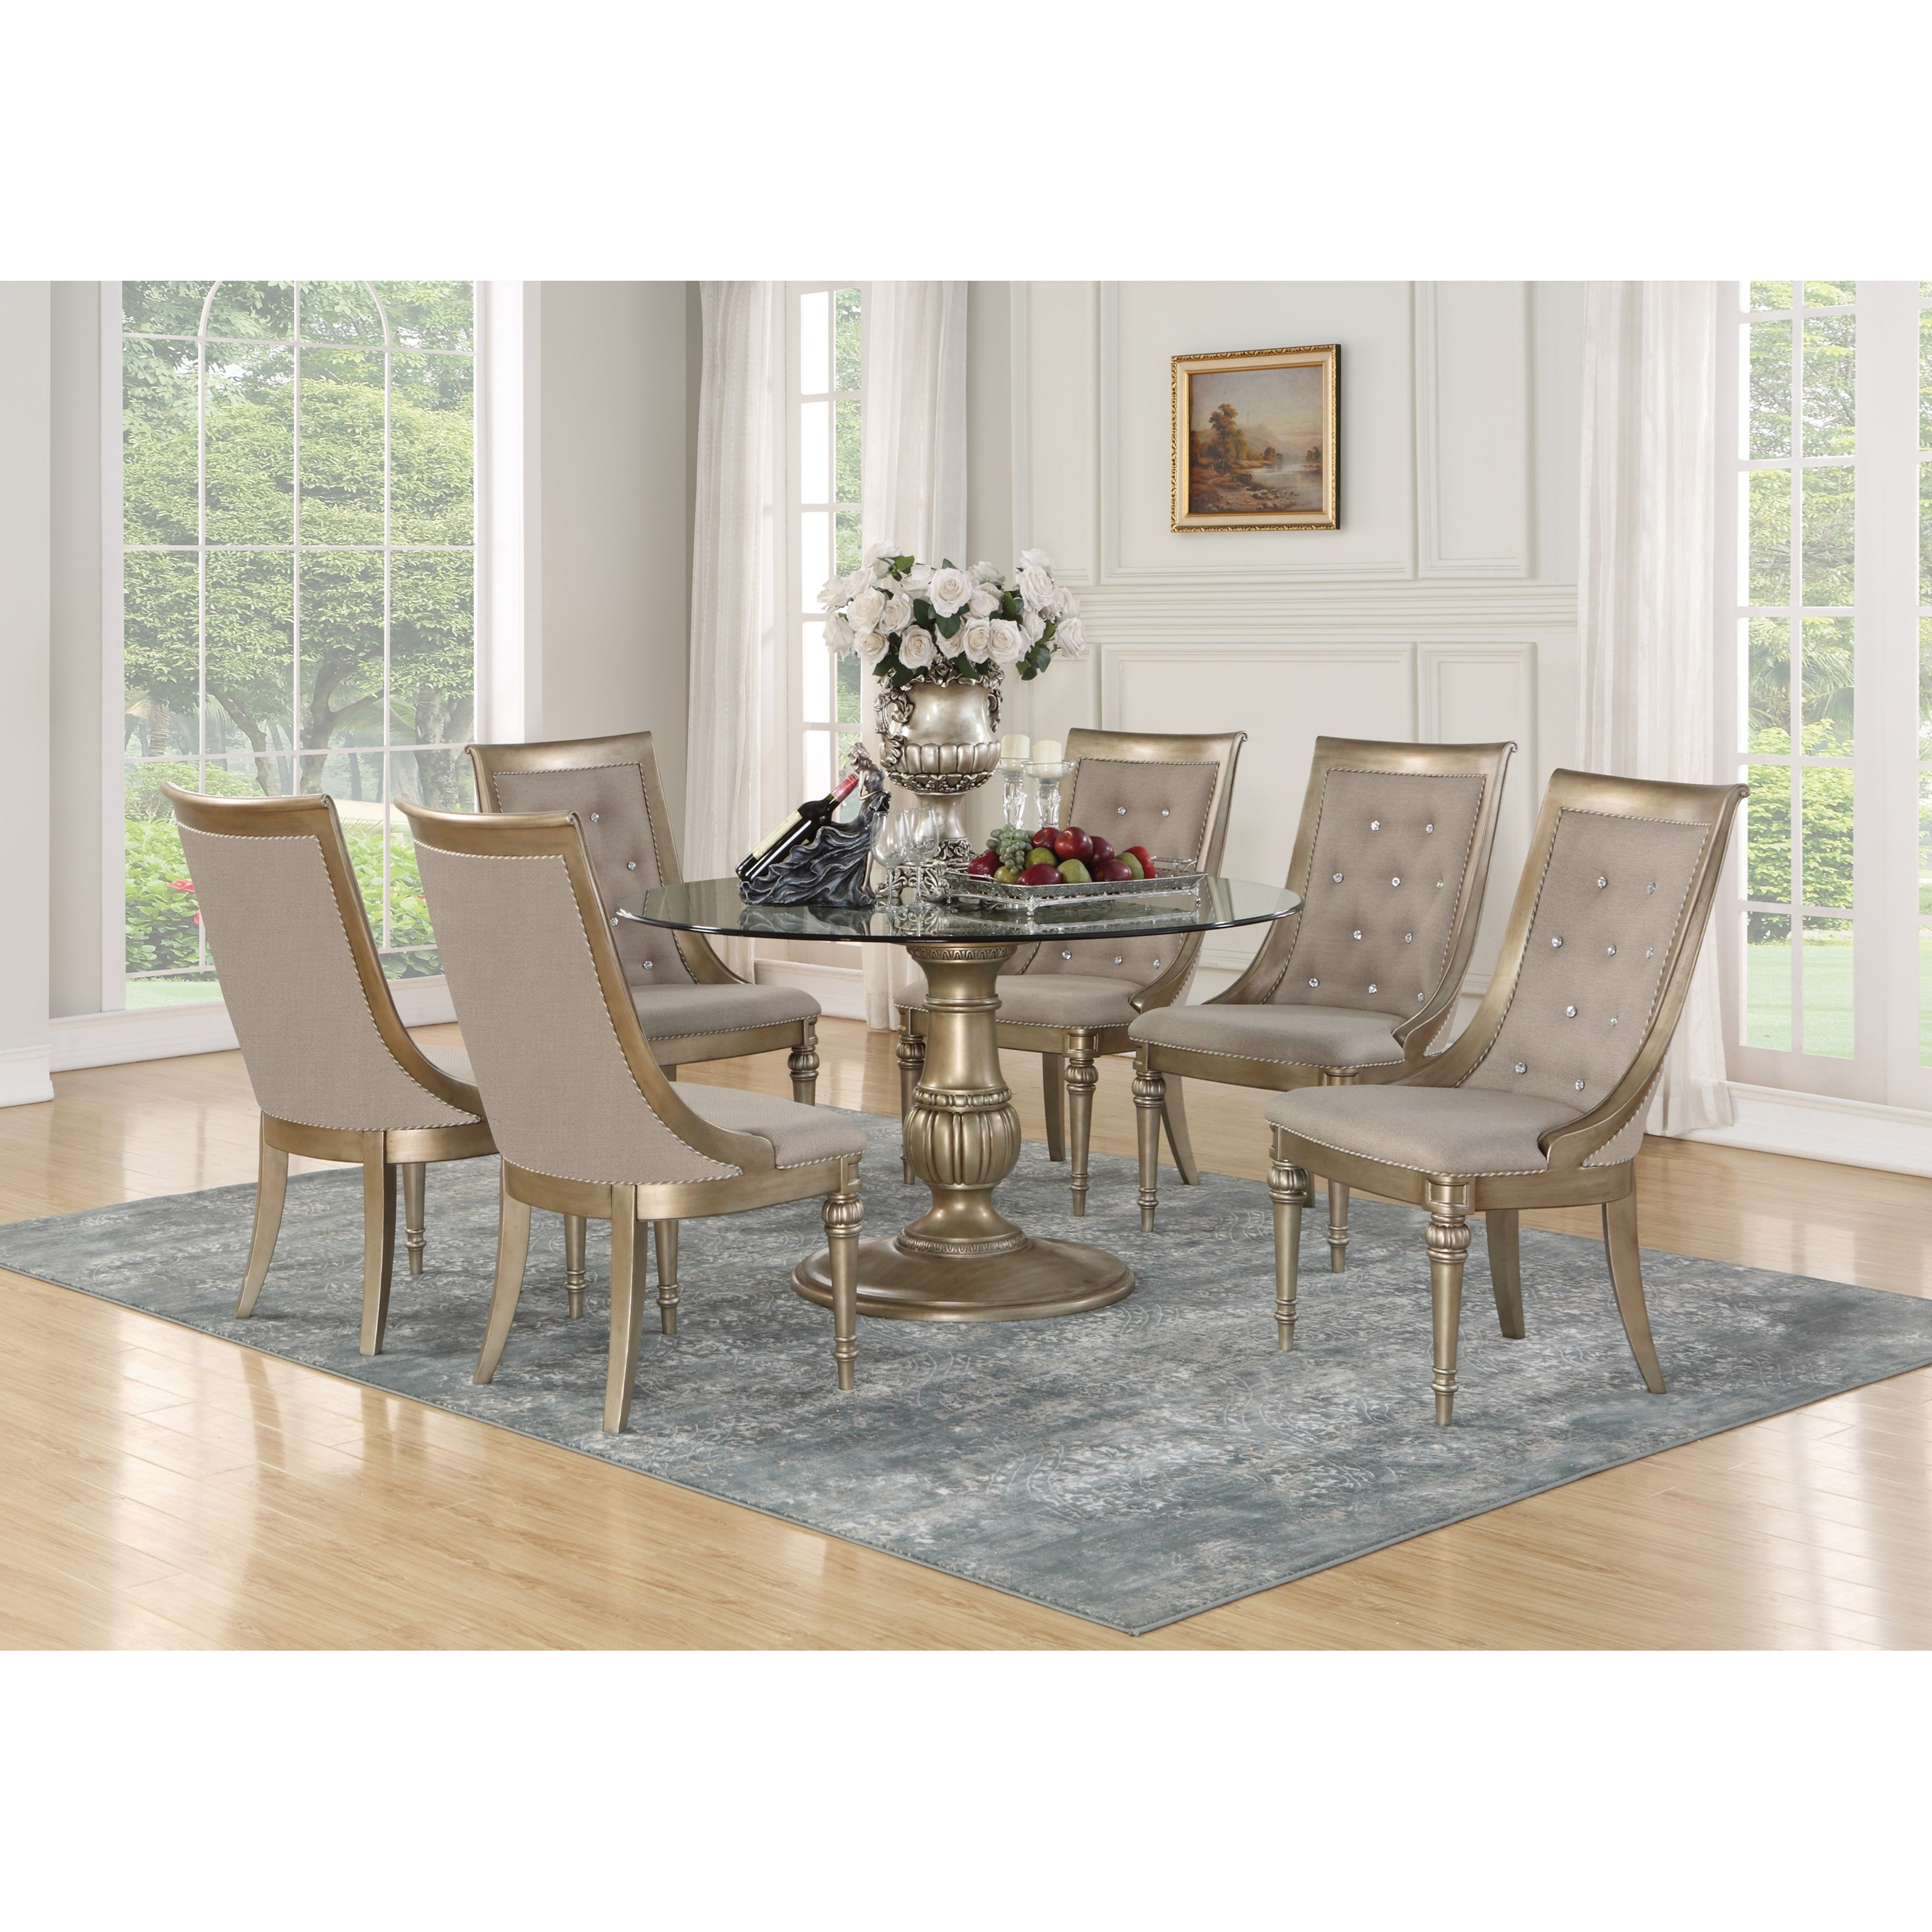 Flexsteel Wynwood Collection San Cristobal 7 Piece Round Dining Set with Glass Table Top ...